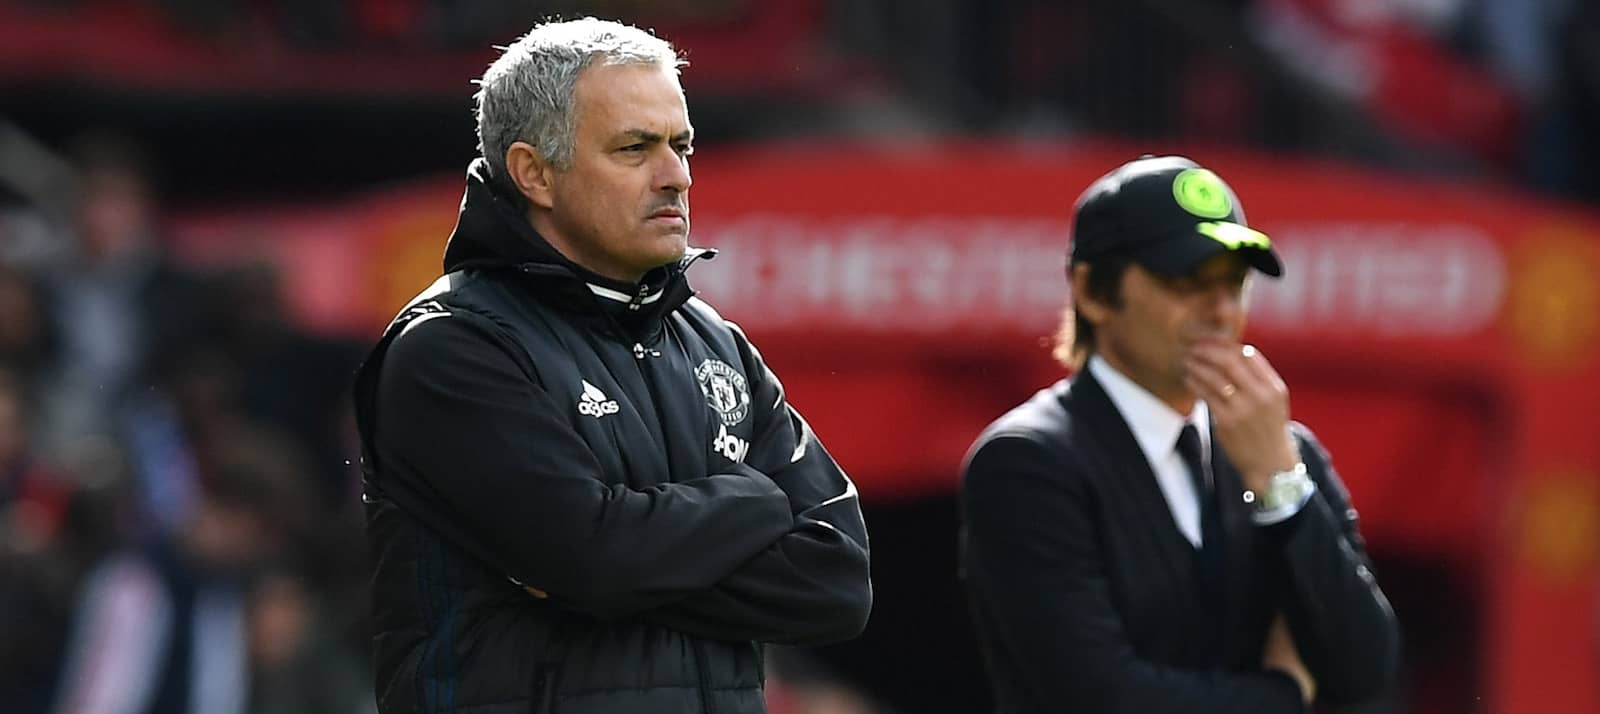 From Italy: Antonio Conte wants to replace Jose Mourinho at Manchester United